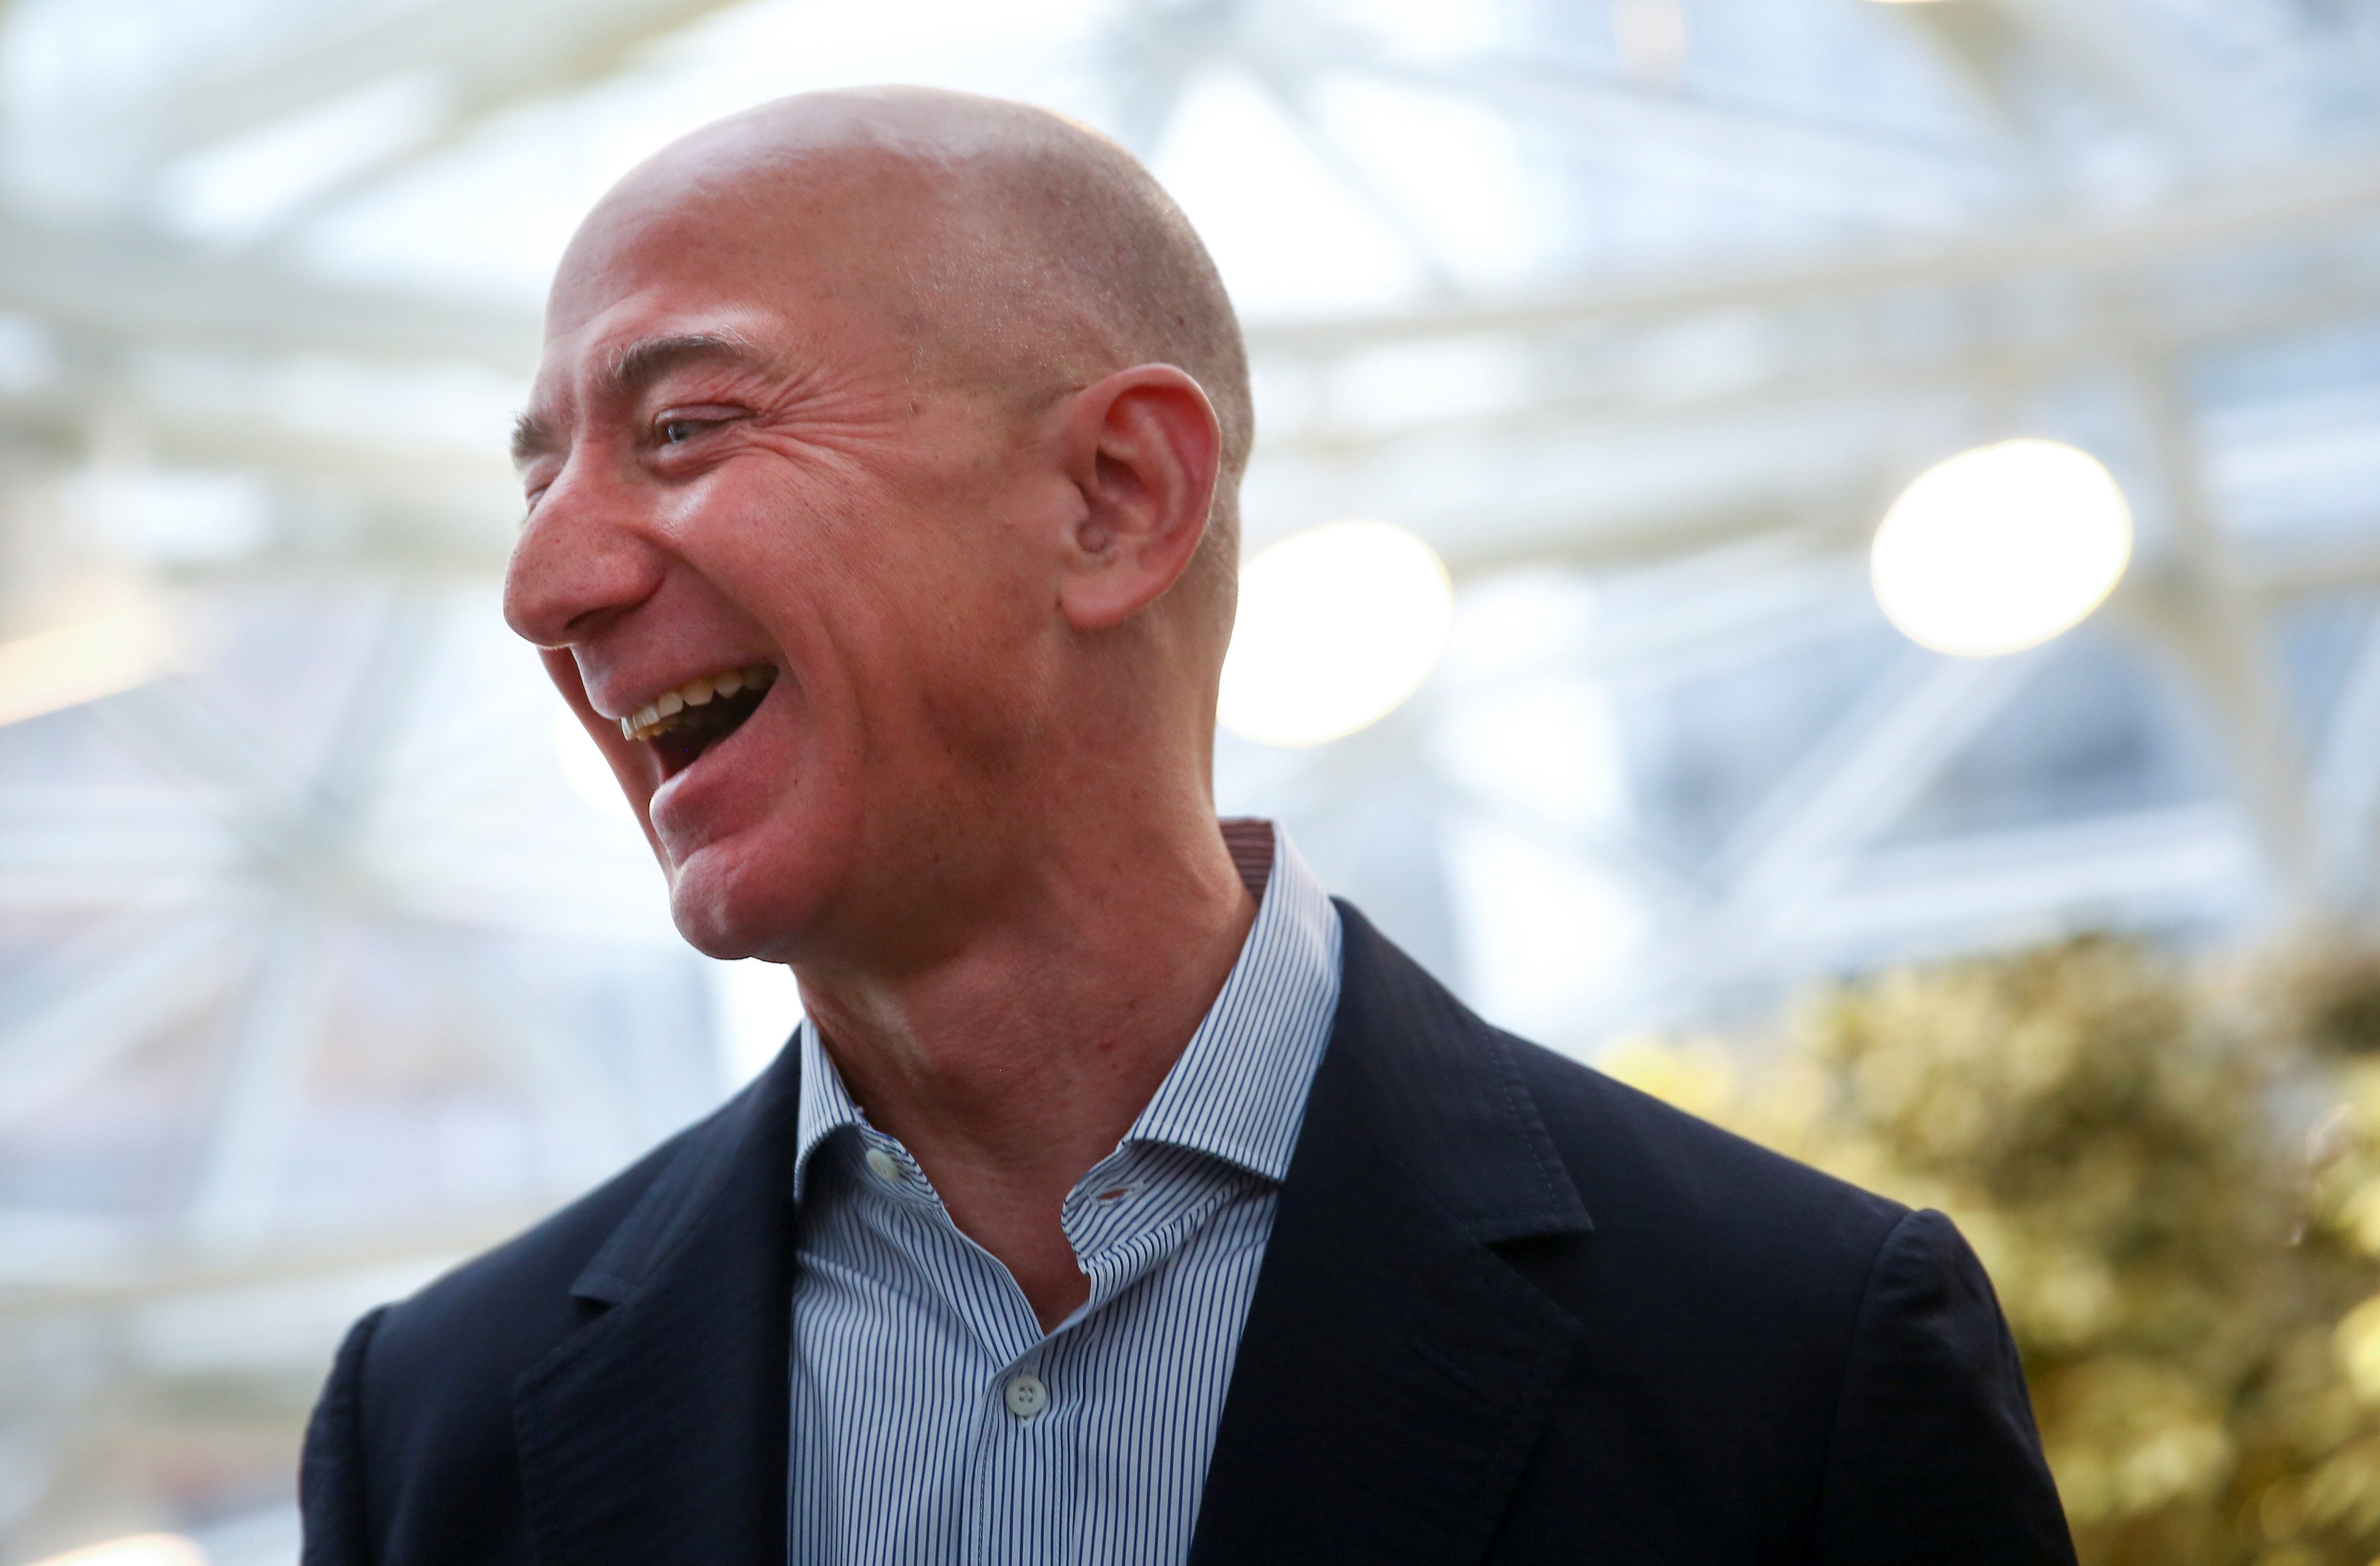 Amazon joins Apple in the trillion-dollar club